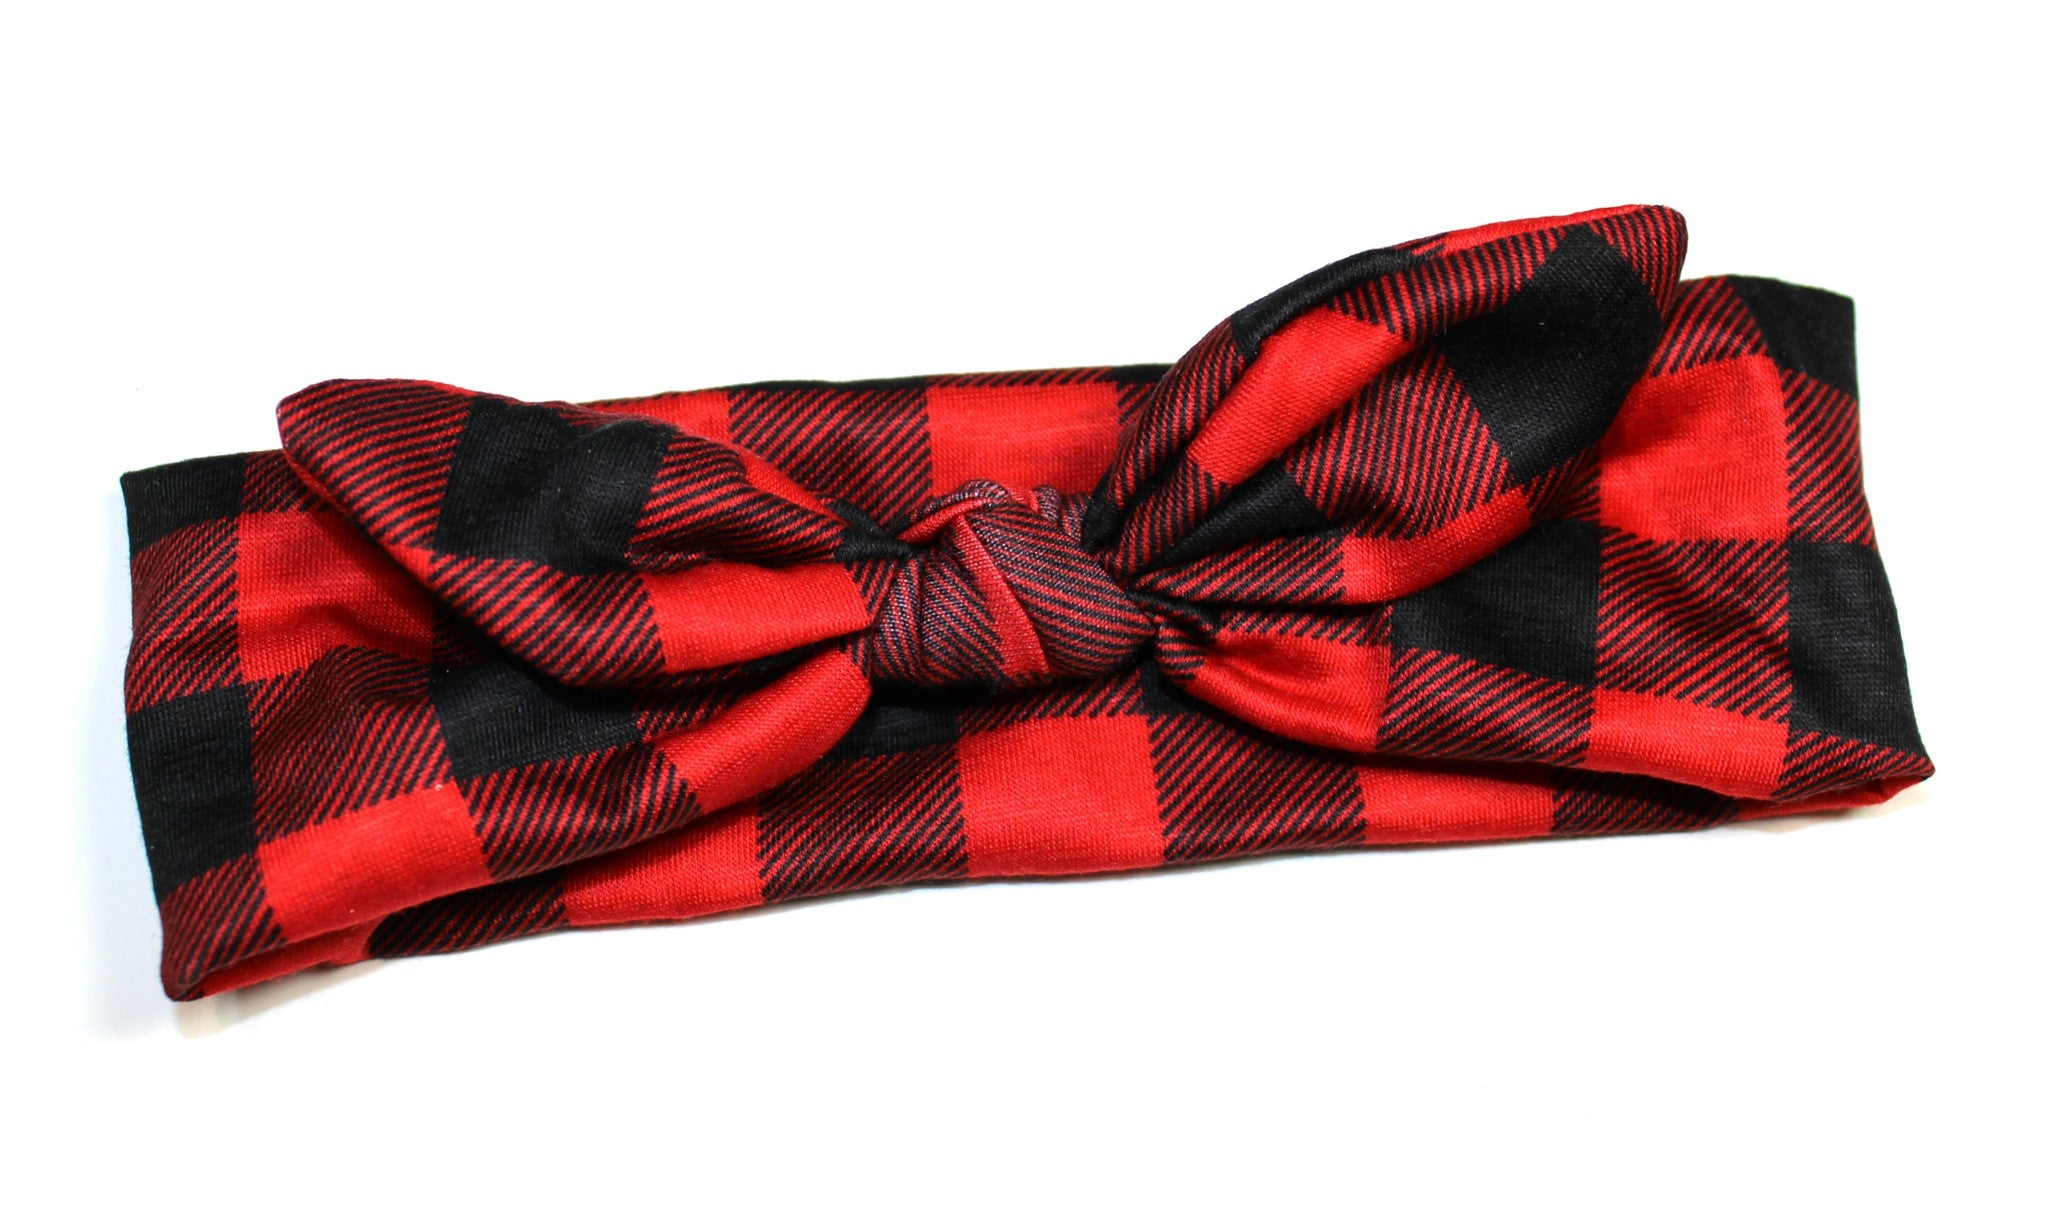 Knot Headband - Buffalo Plaid - Size Regular - shabbyflowers.com